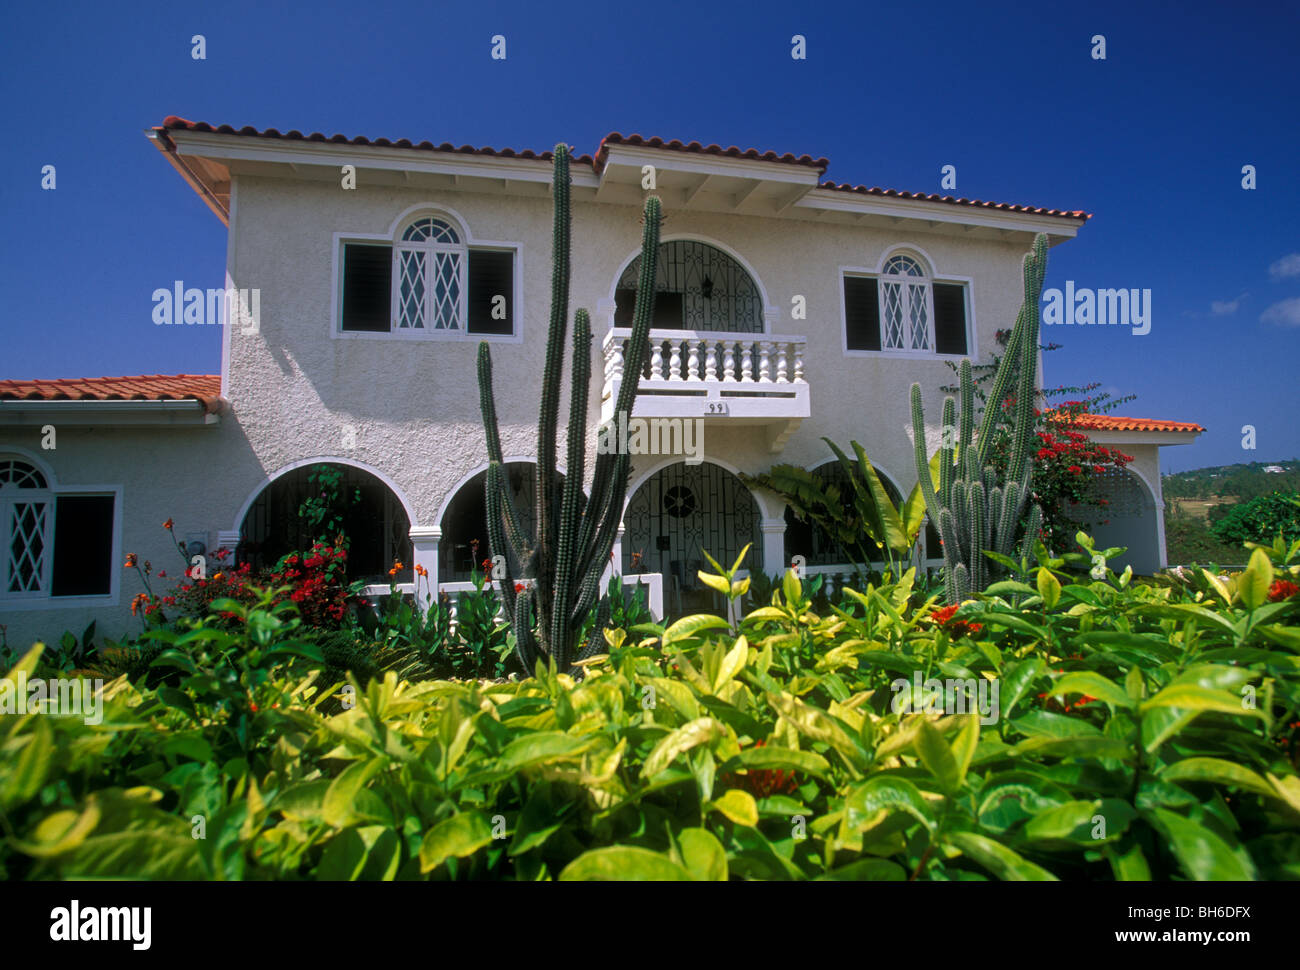 Jamaica Home Stock Photos Amp Jamaica Home Stock Images Alamy